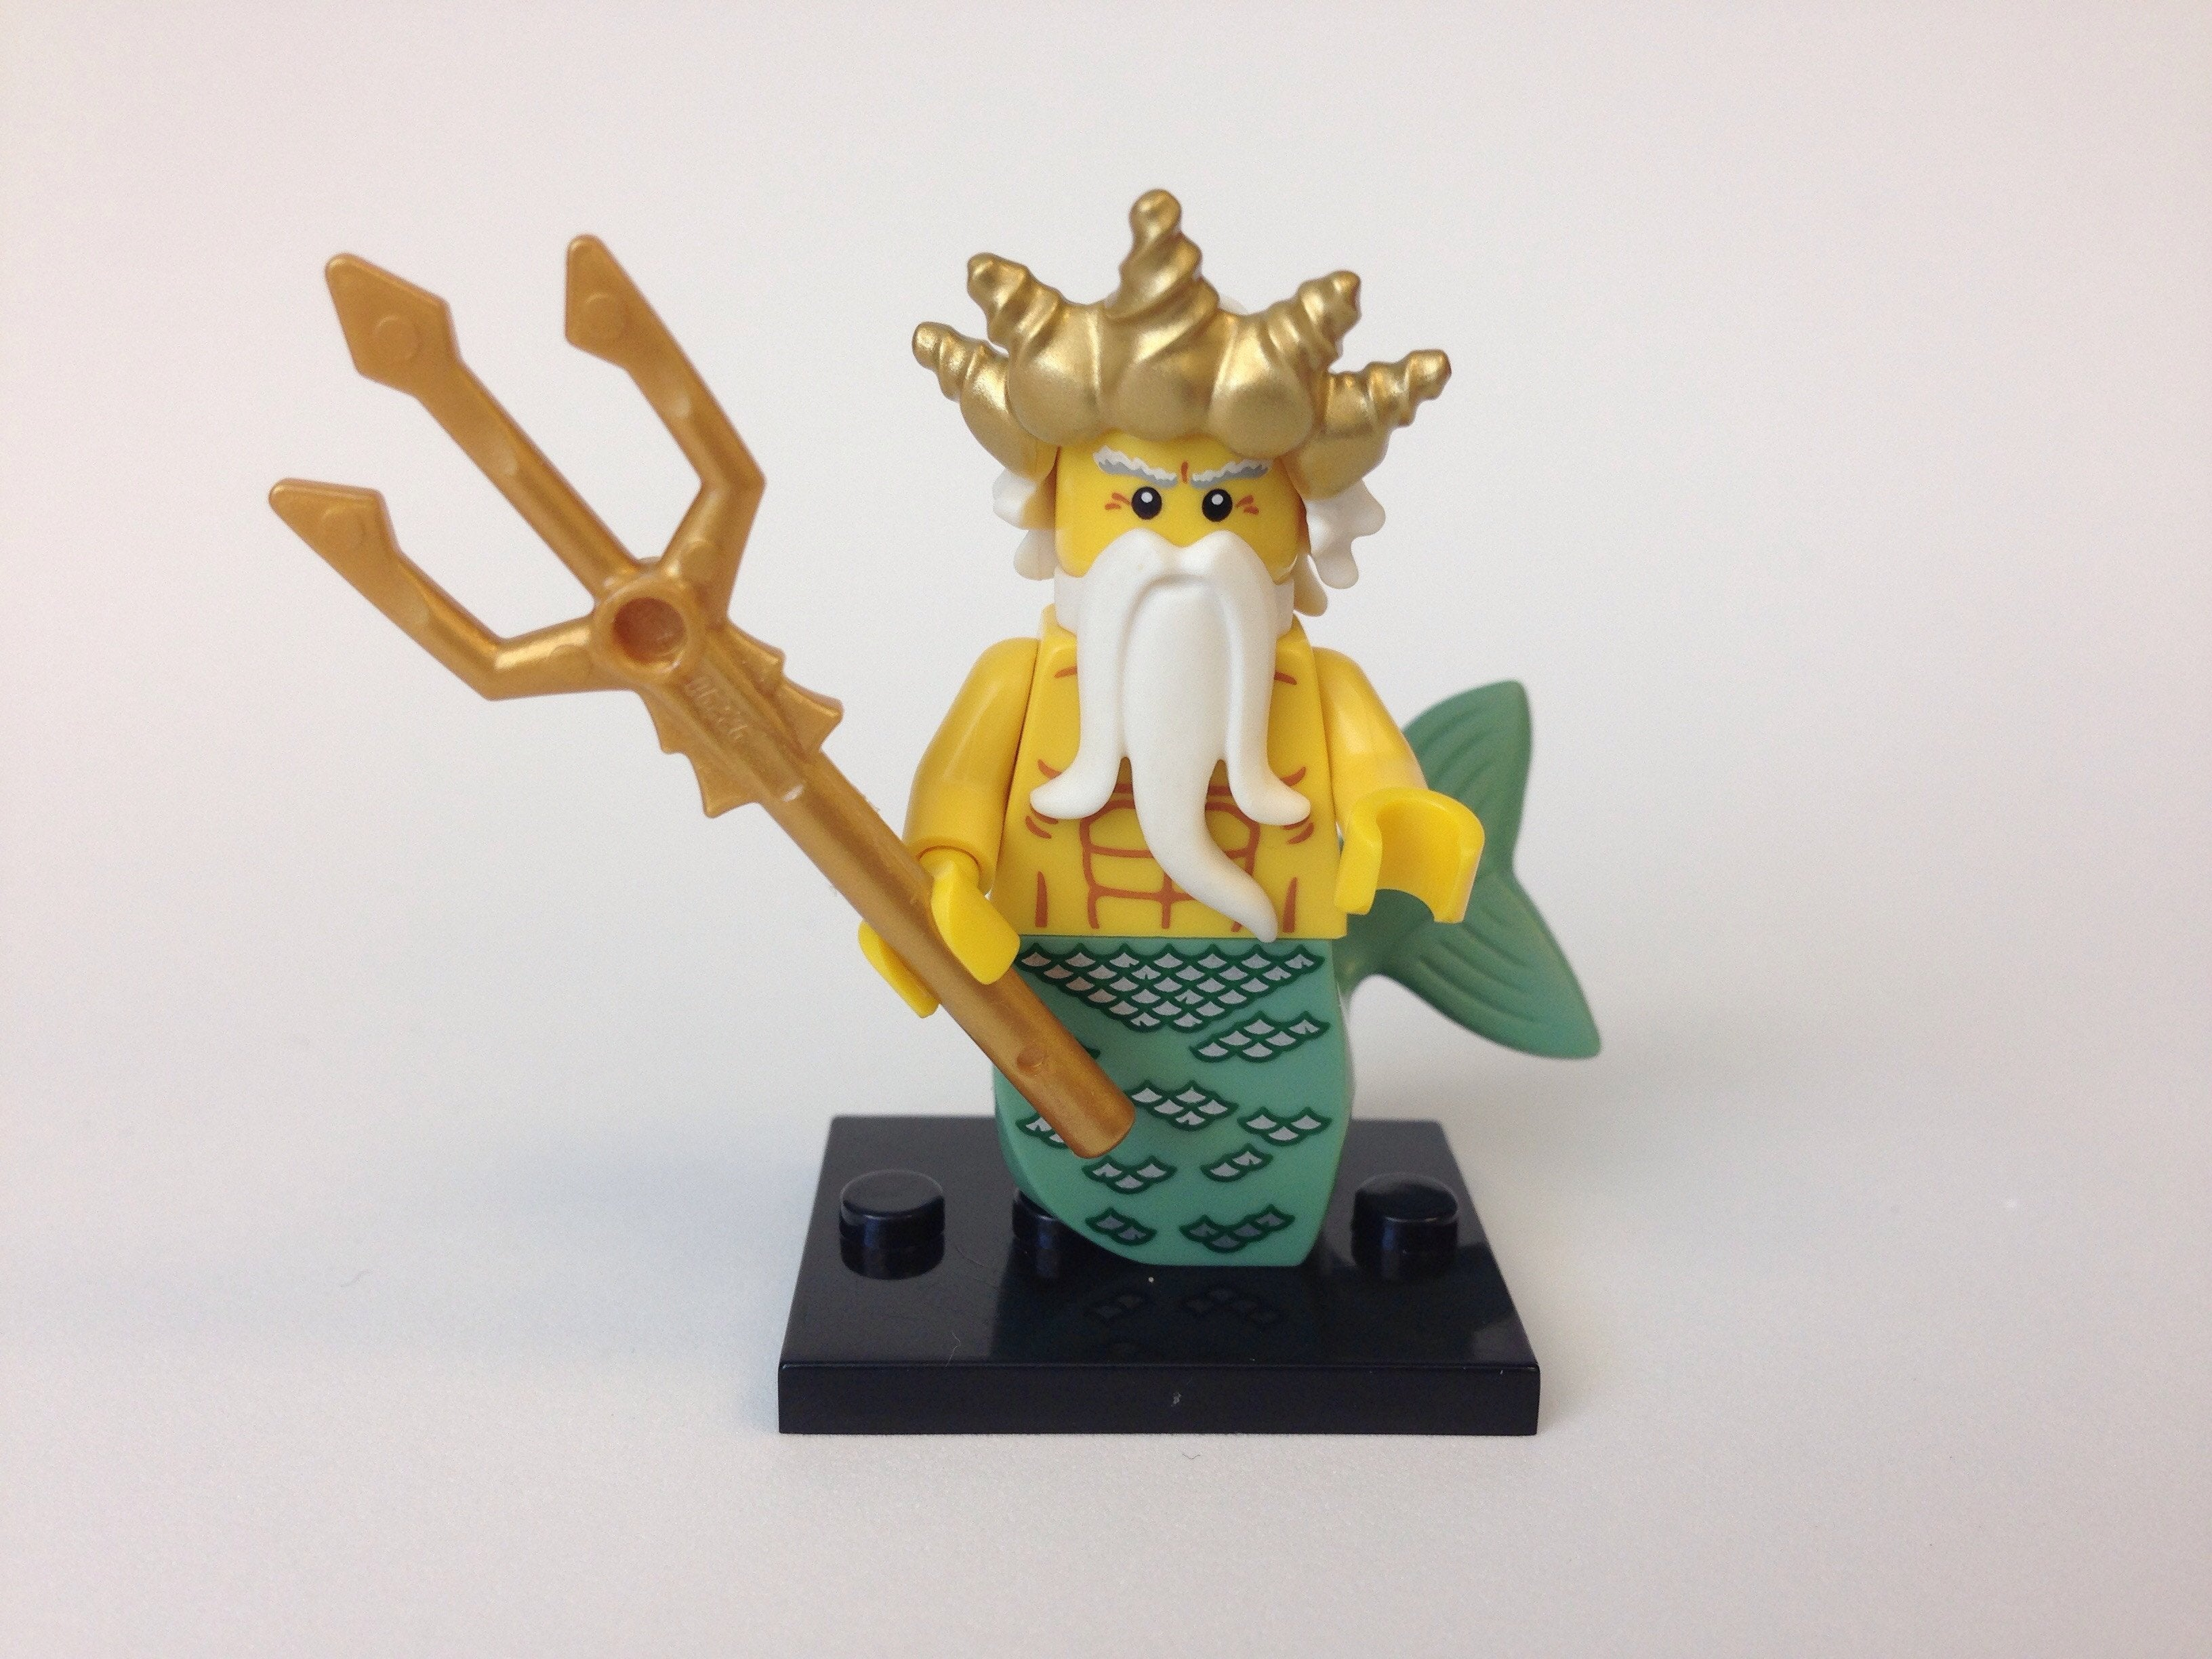 Lego Ocean King Minifigure Series 7 CMF with Trident